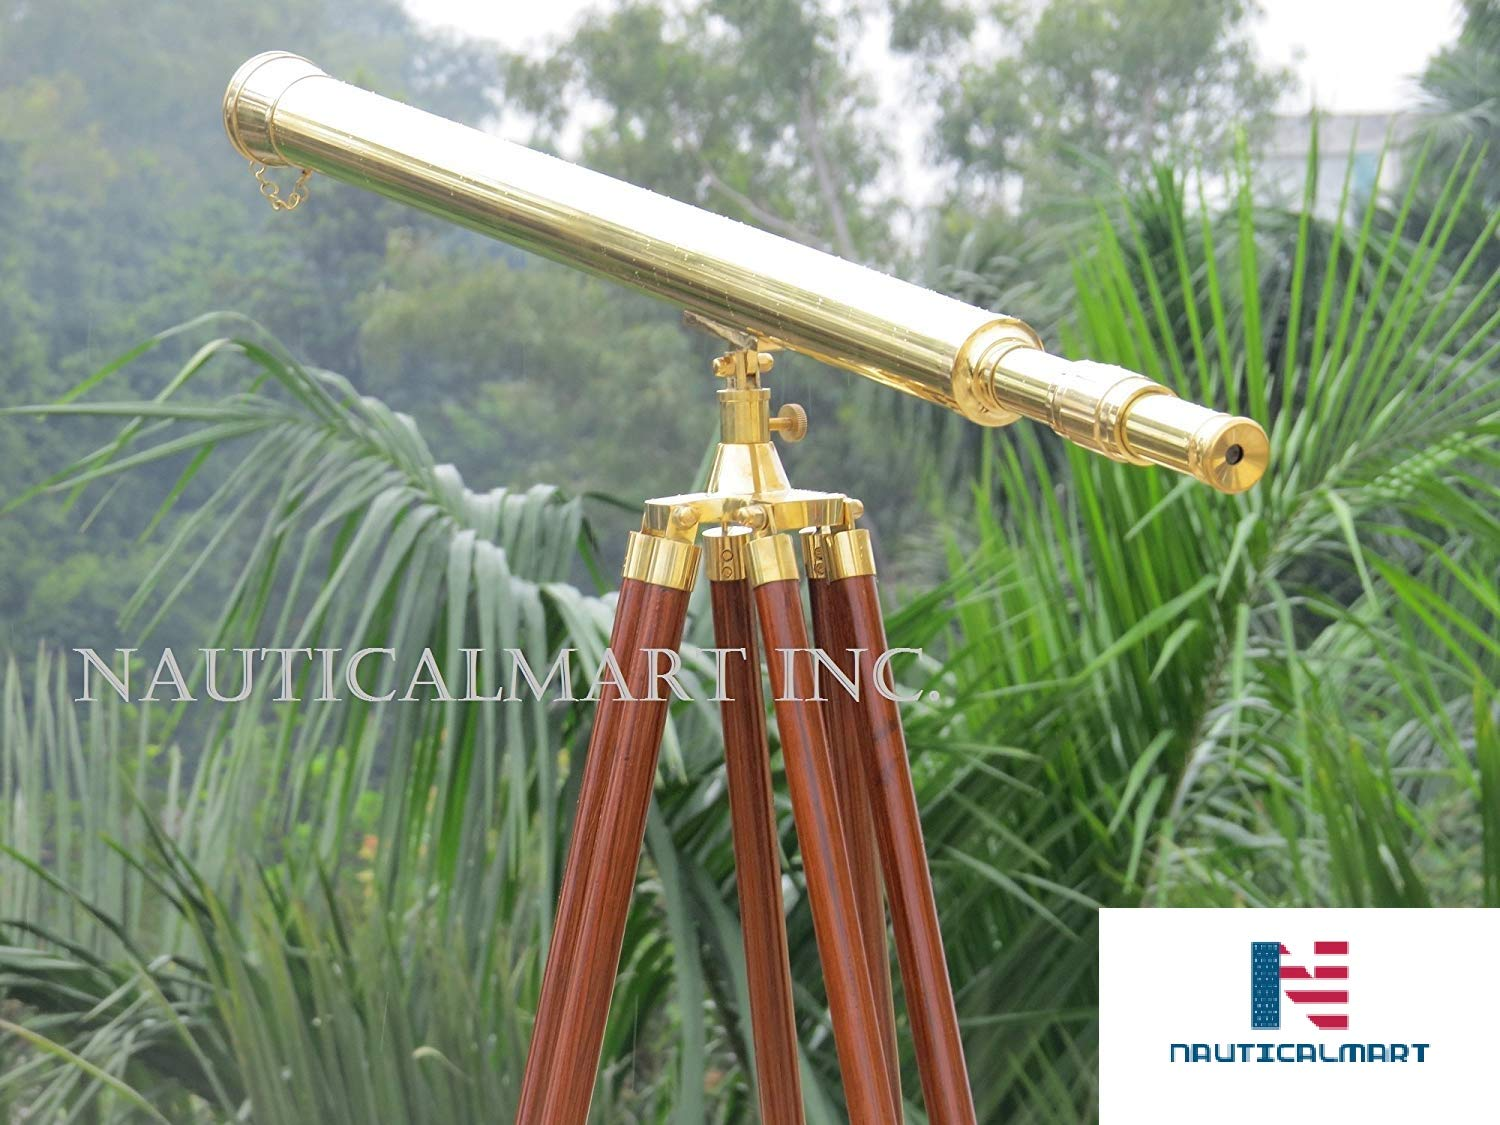 40-inch Clear Coated Solid Brass Harbormaster Telescope on a Mahogany Tripod with Standard Mount by NAUTICALMART